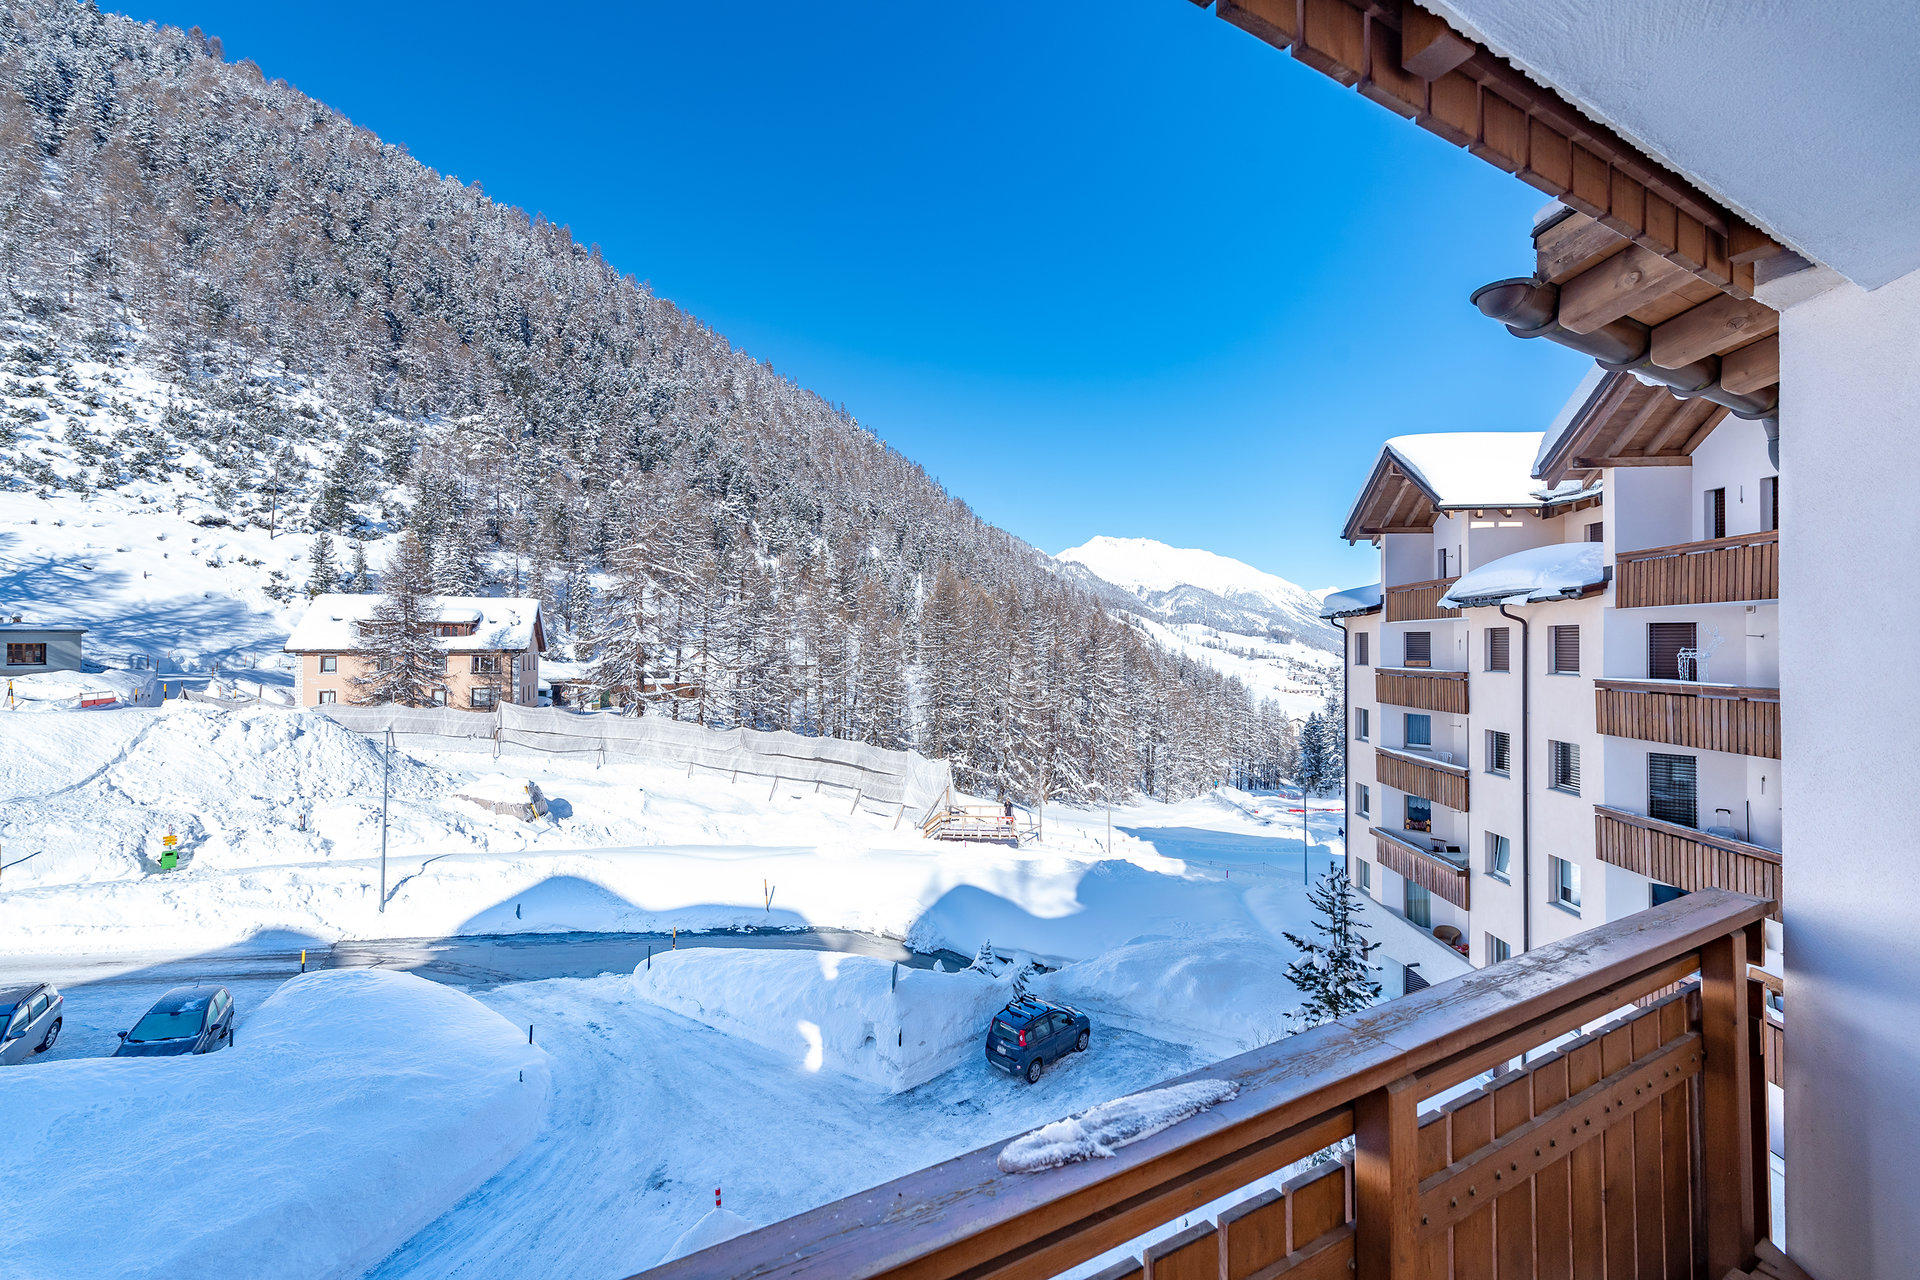 Large apartment for sale in Sankt Moritz, Switzerland- land